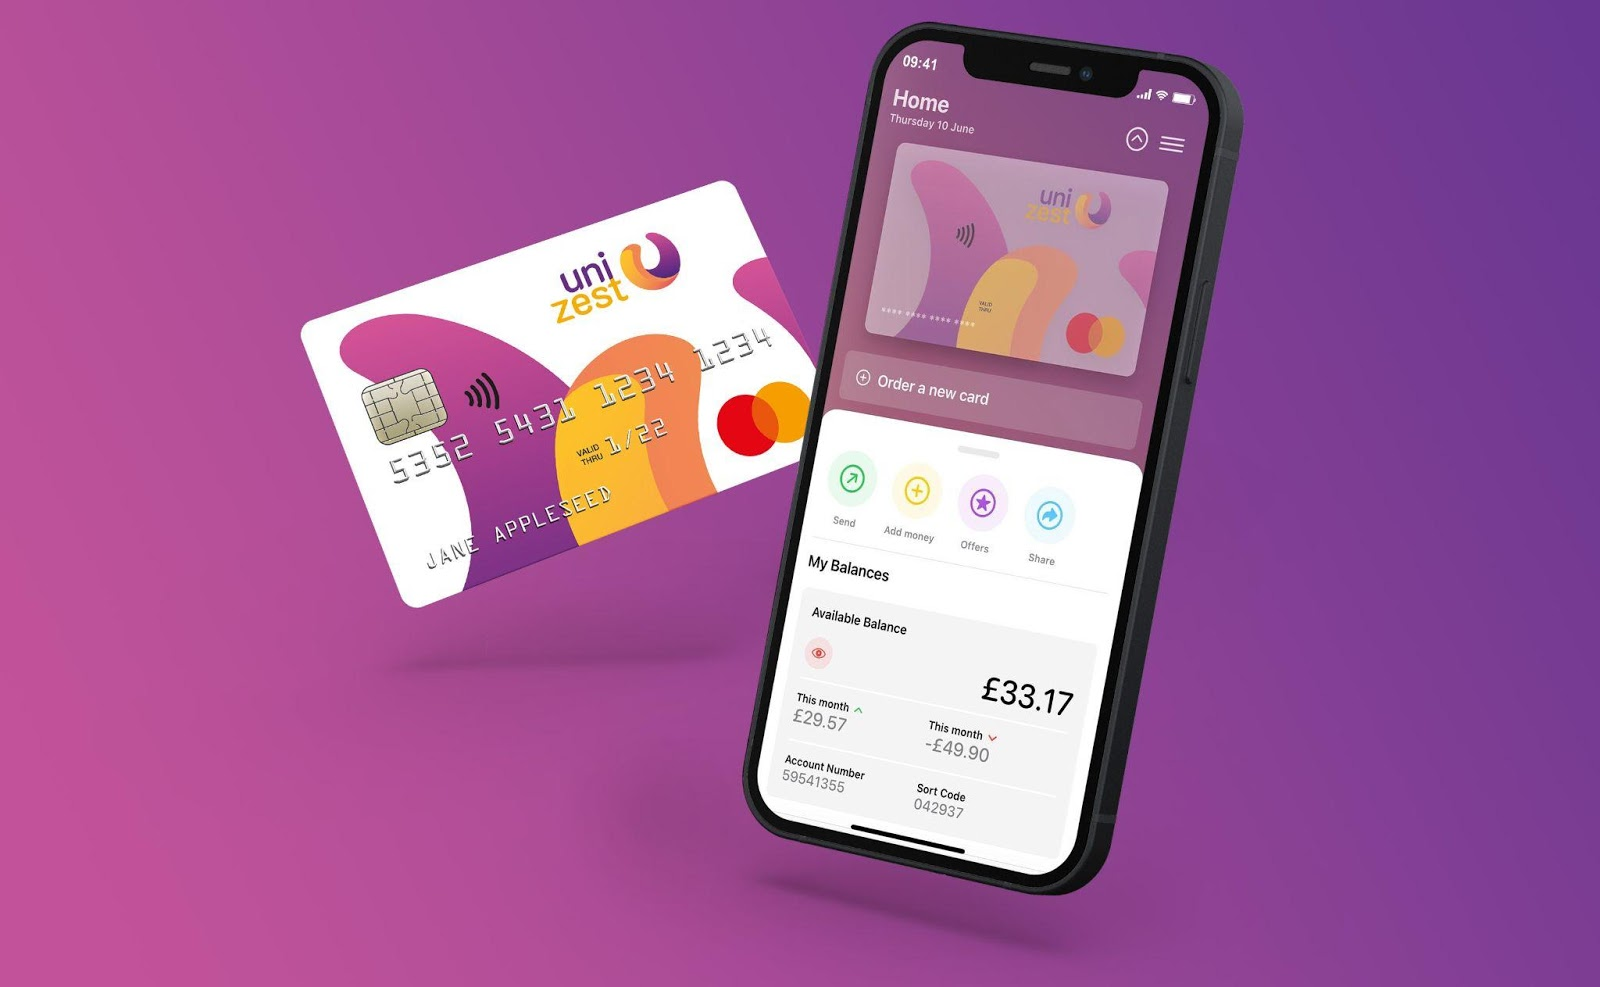 Unizest: the E-account Service for New Arrivals to the UK